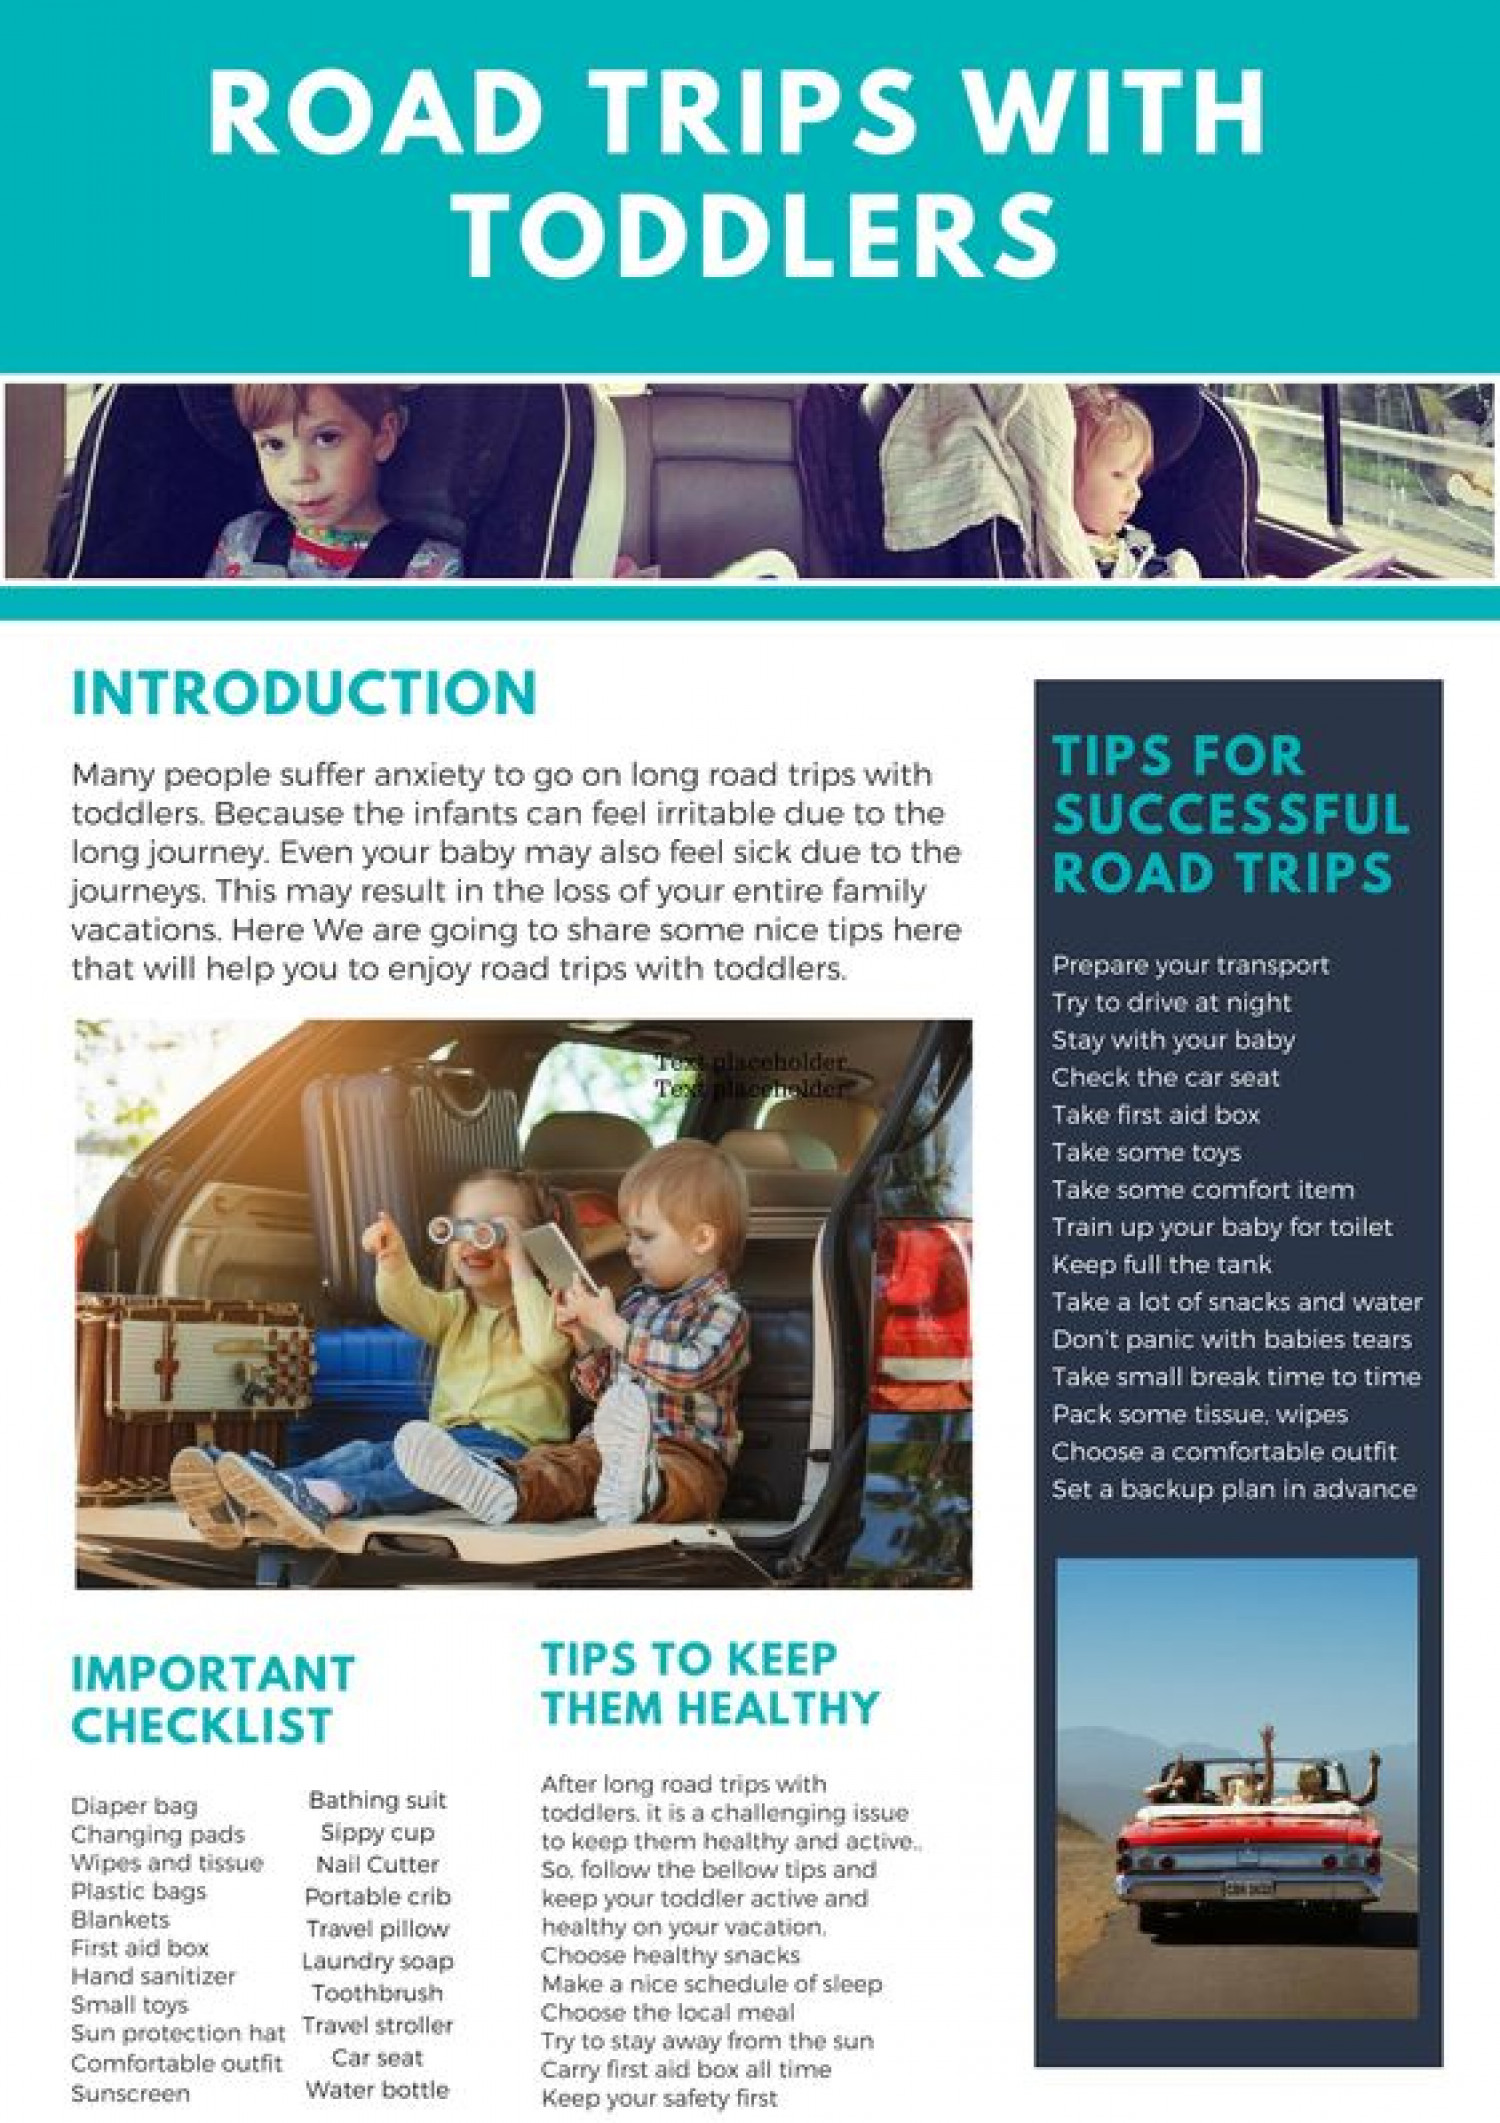 How To Make Successful Road Trips With Toddlers Infographic